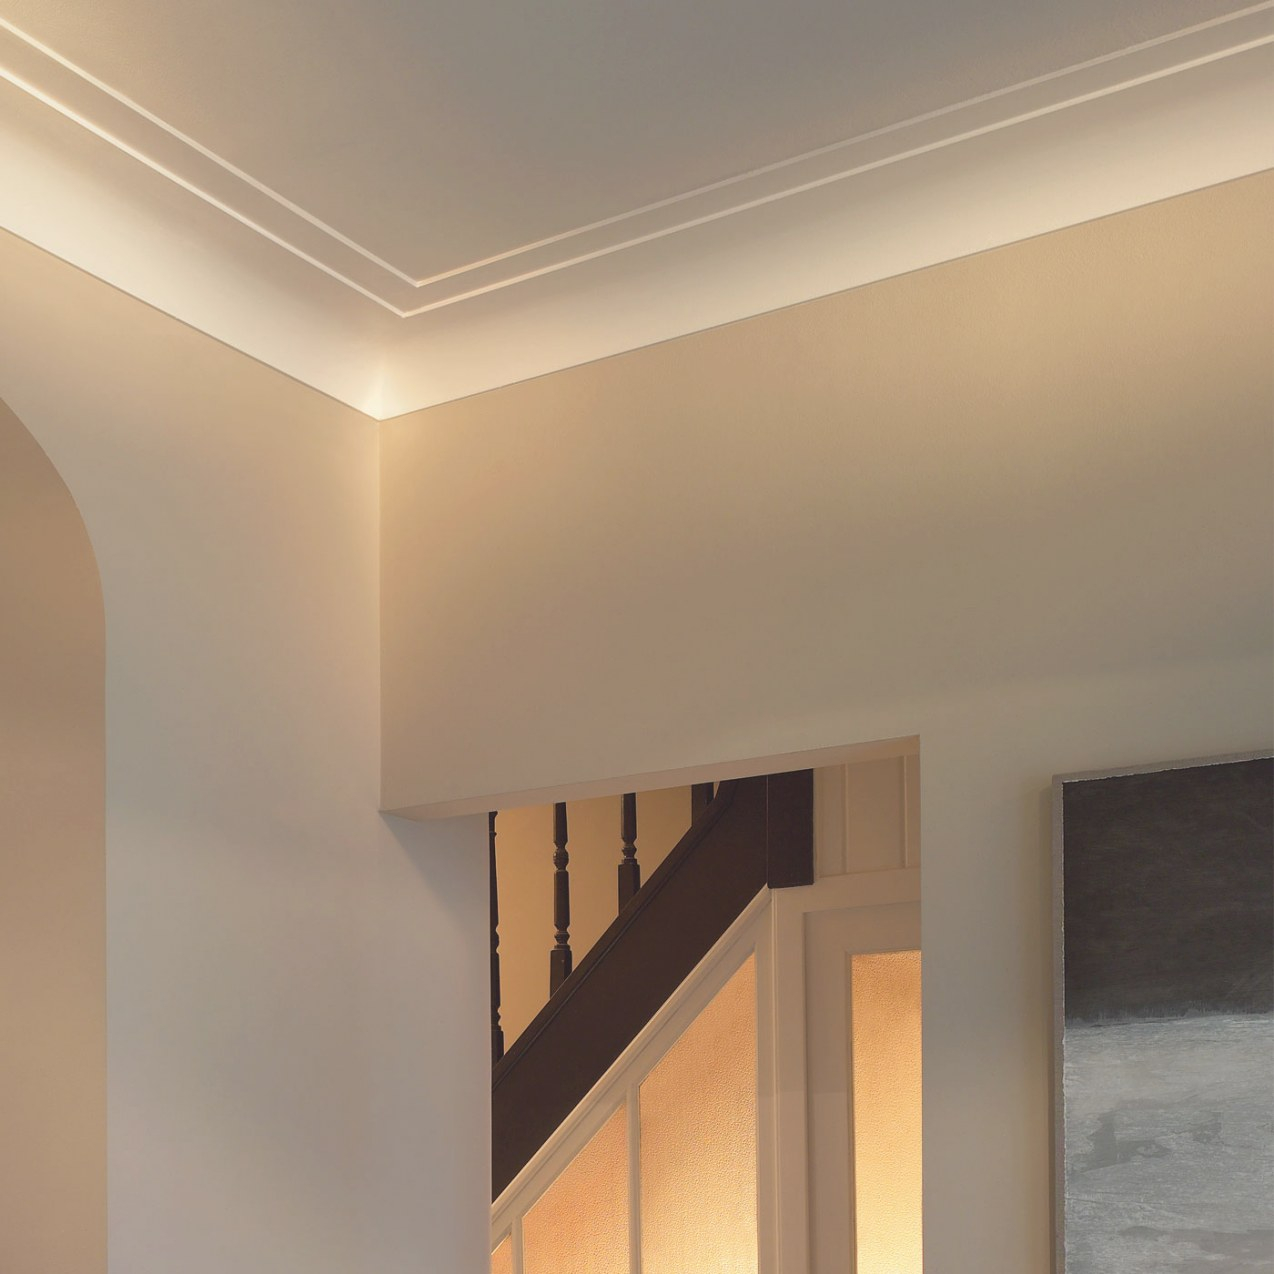 Miami Art Deco Crown Molding regarding What Is Crown Molding